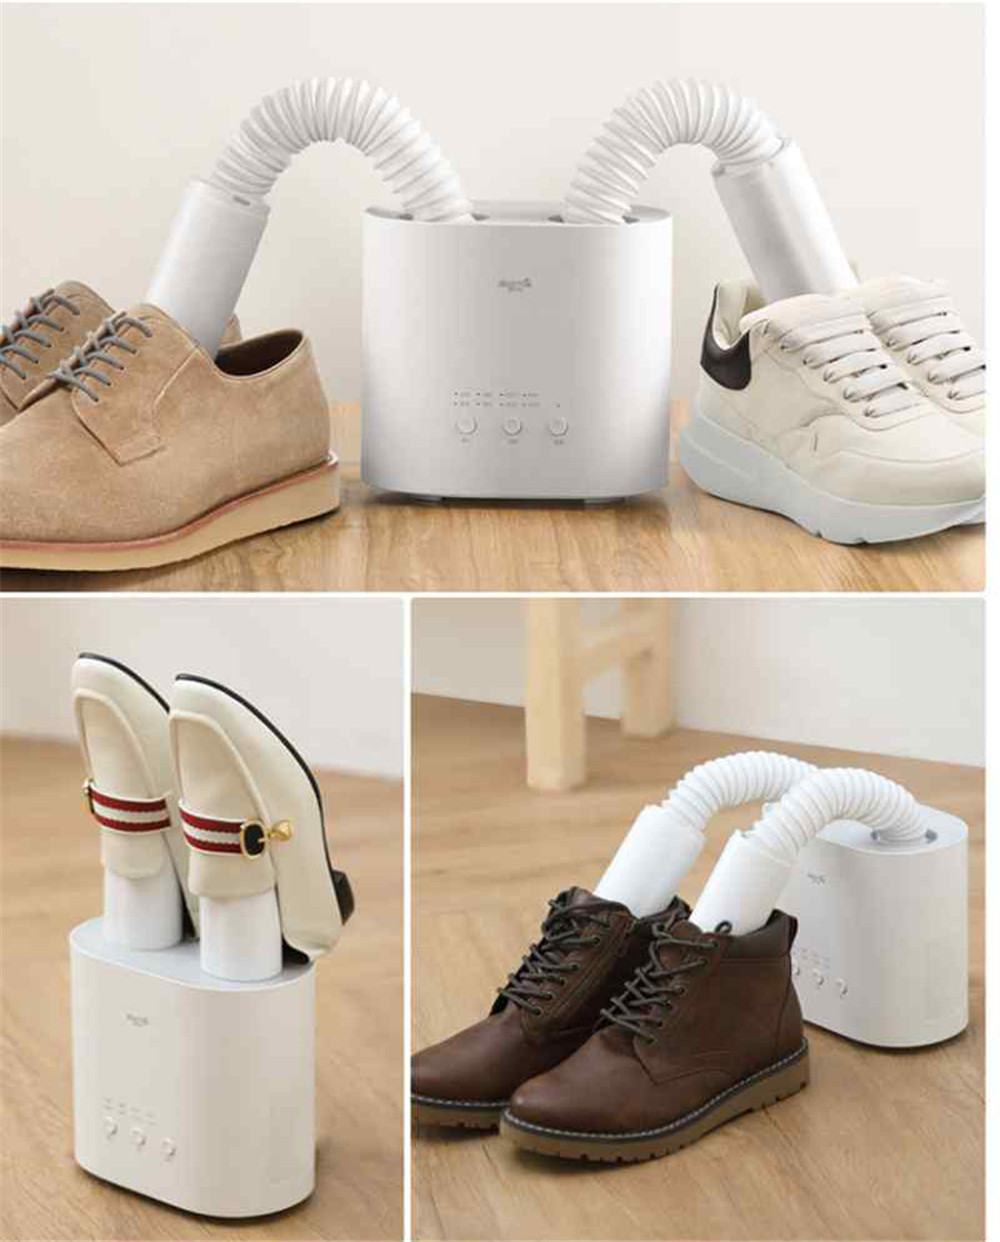 Xiaomi Delma Shoes Dryer Intelligent Multi-function Telescopic Multi-function Disinfection U-type Drying Shoes